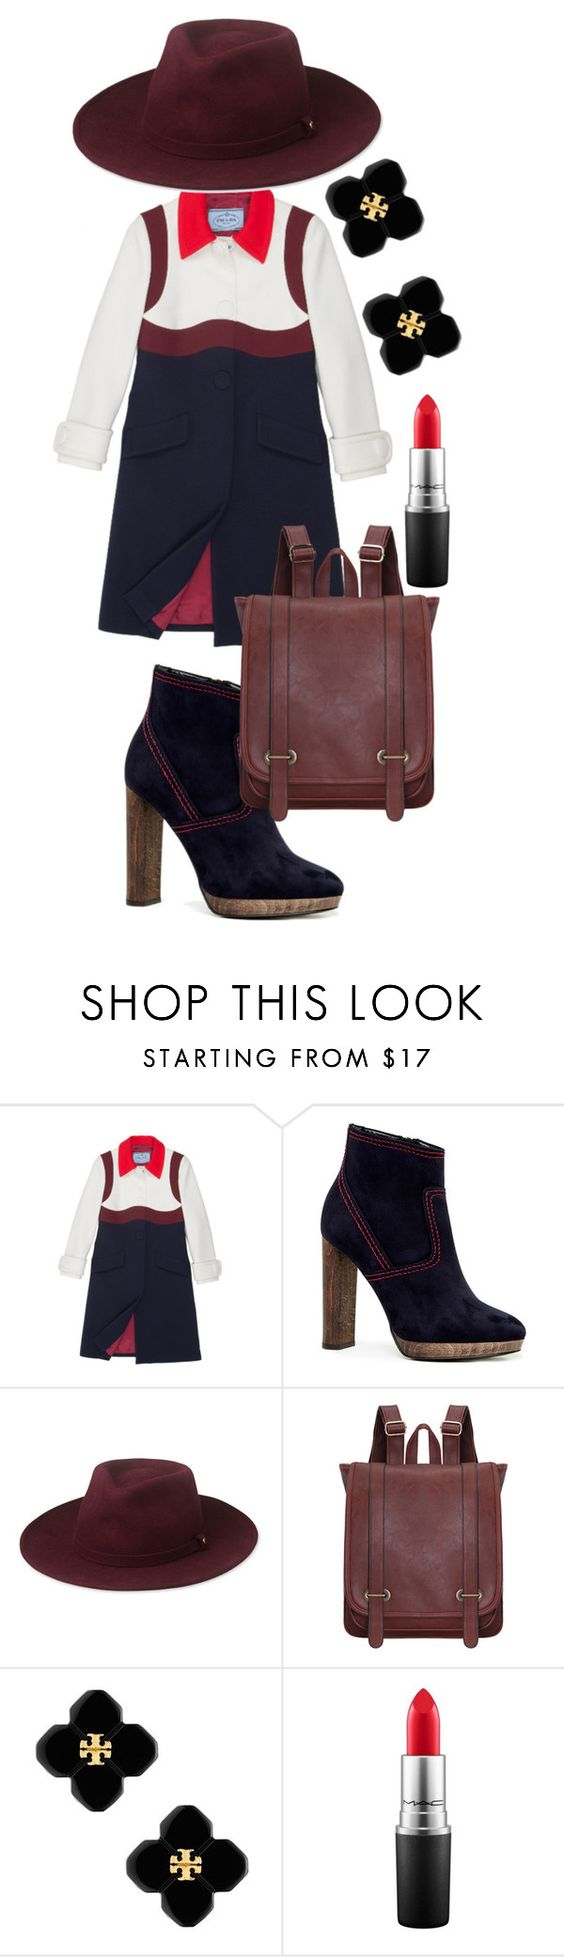 """Untitled #587"" by parcocafe ❤ liked on Polyvore featuring Prada, Burberry, Whistles, Tory Burch and MAC Cosmetics"